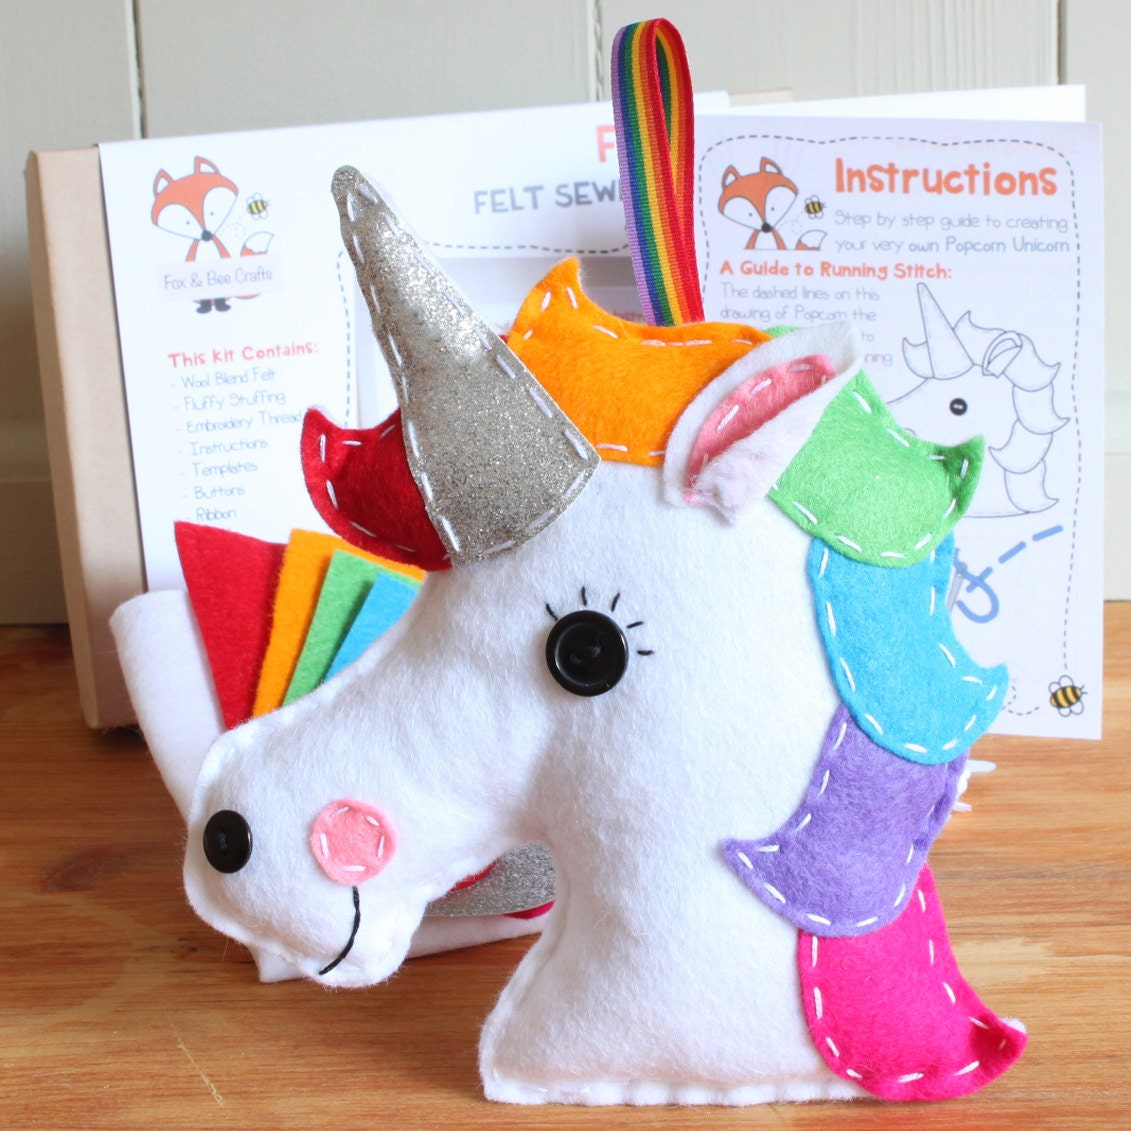 personalised popcorn the unicorn felt sewing kit perfect